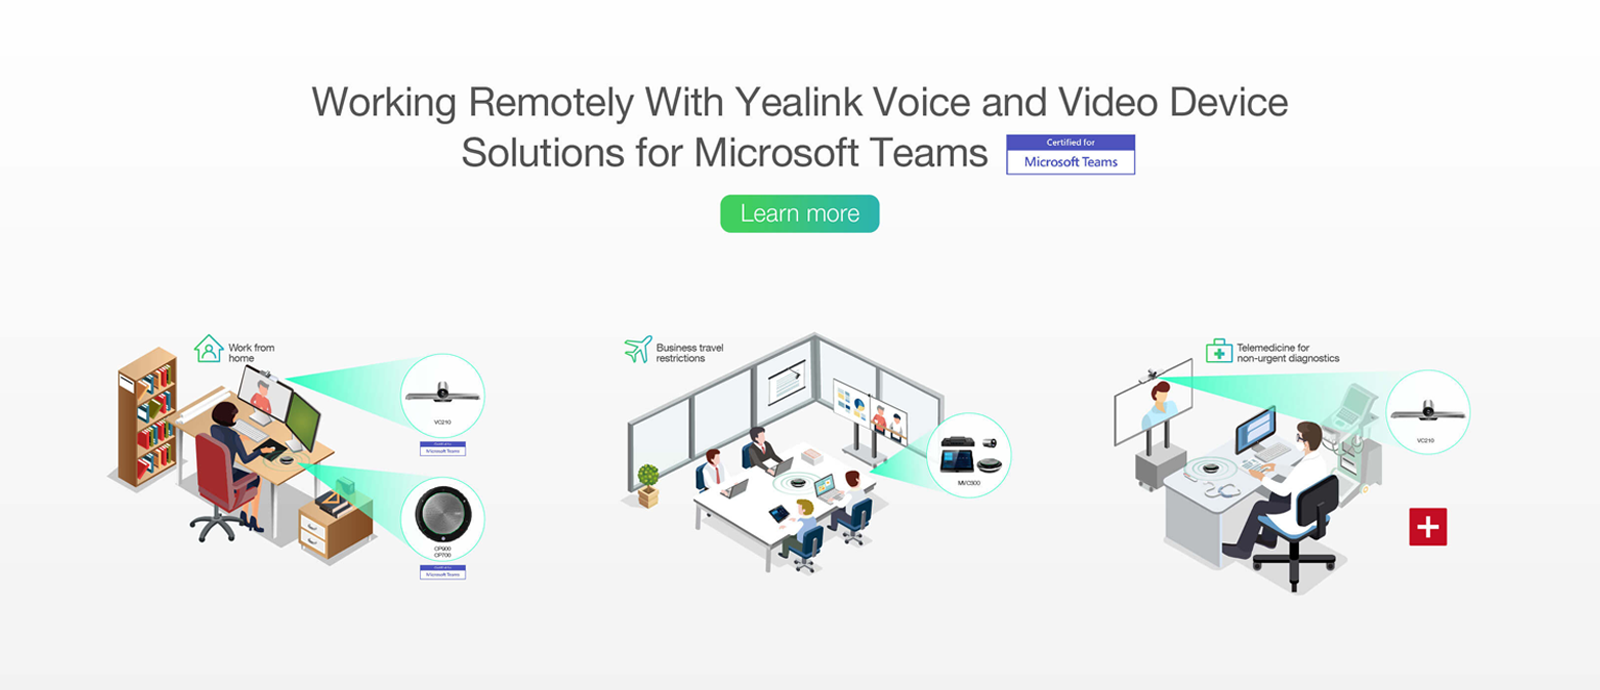 Yealink Teams - YEALINK 香港代理 - SIPMAX Hong Kong - VOIP 設備供應商